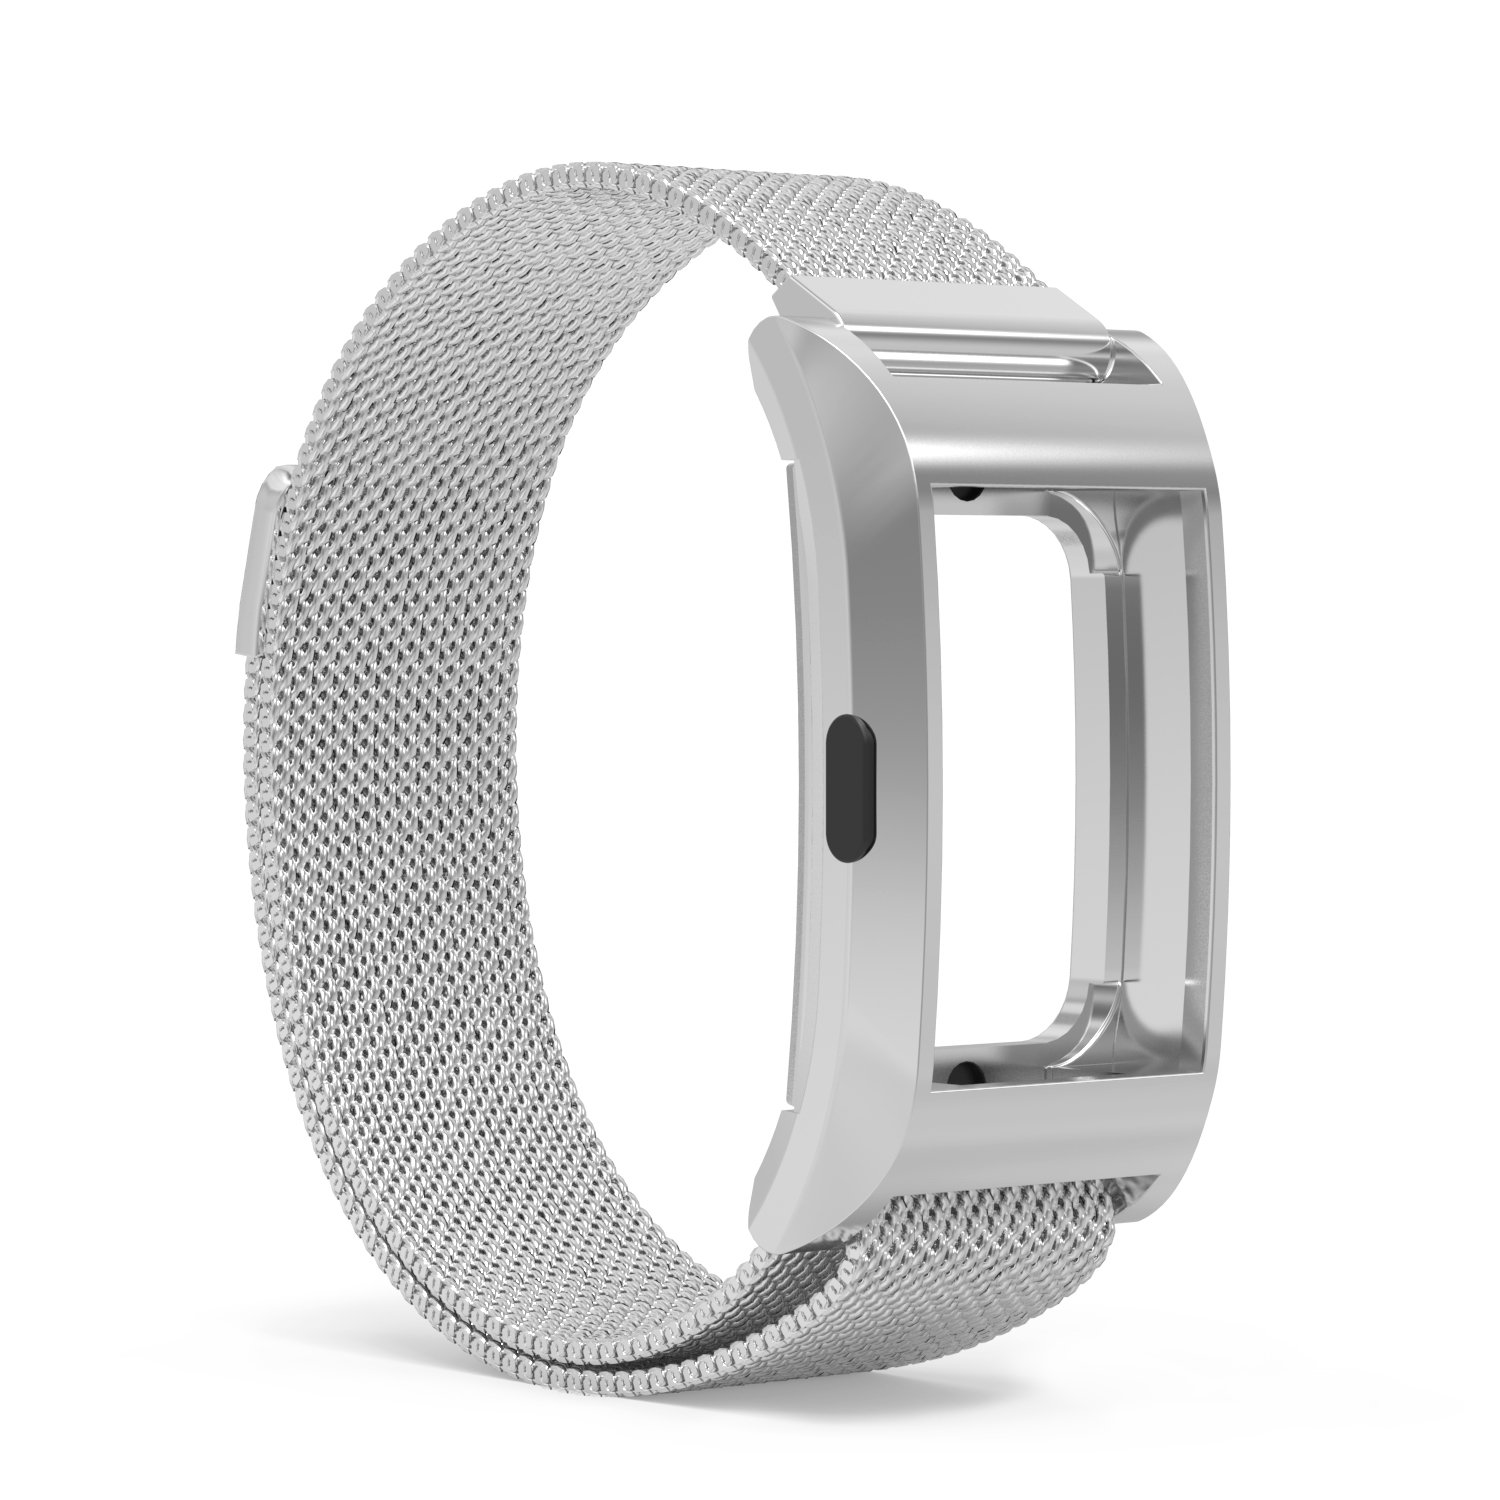 MoKo Fitbit Charge 2 Band, Milanese Loop Mesh Stainless Steel Bracelet Strap + Frame Housing for 2016 Fitbit Charge 2 Heart Rate + Fitness Wristband, Wrist Length 5.31''-8.26'', Silver